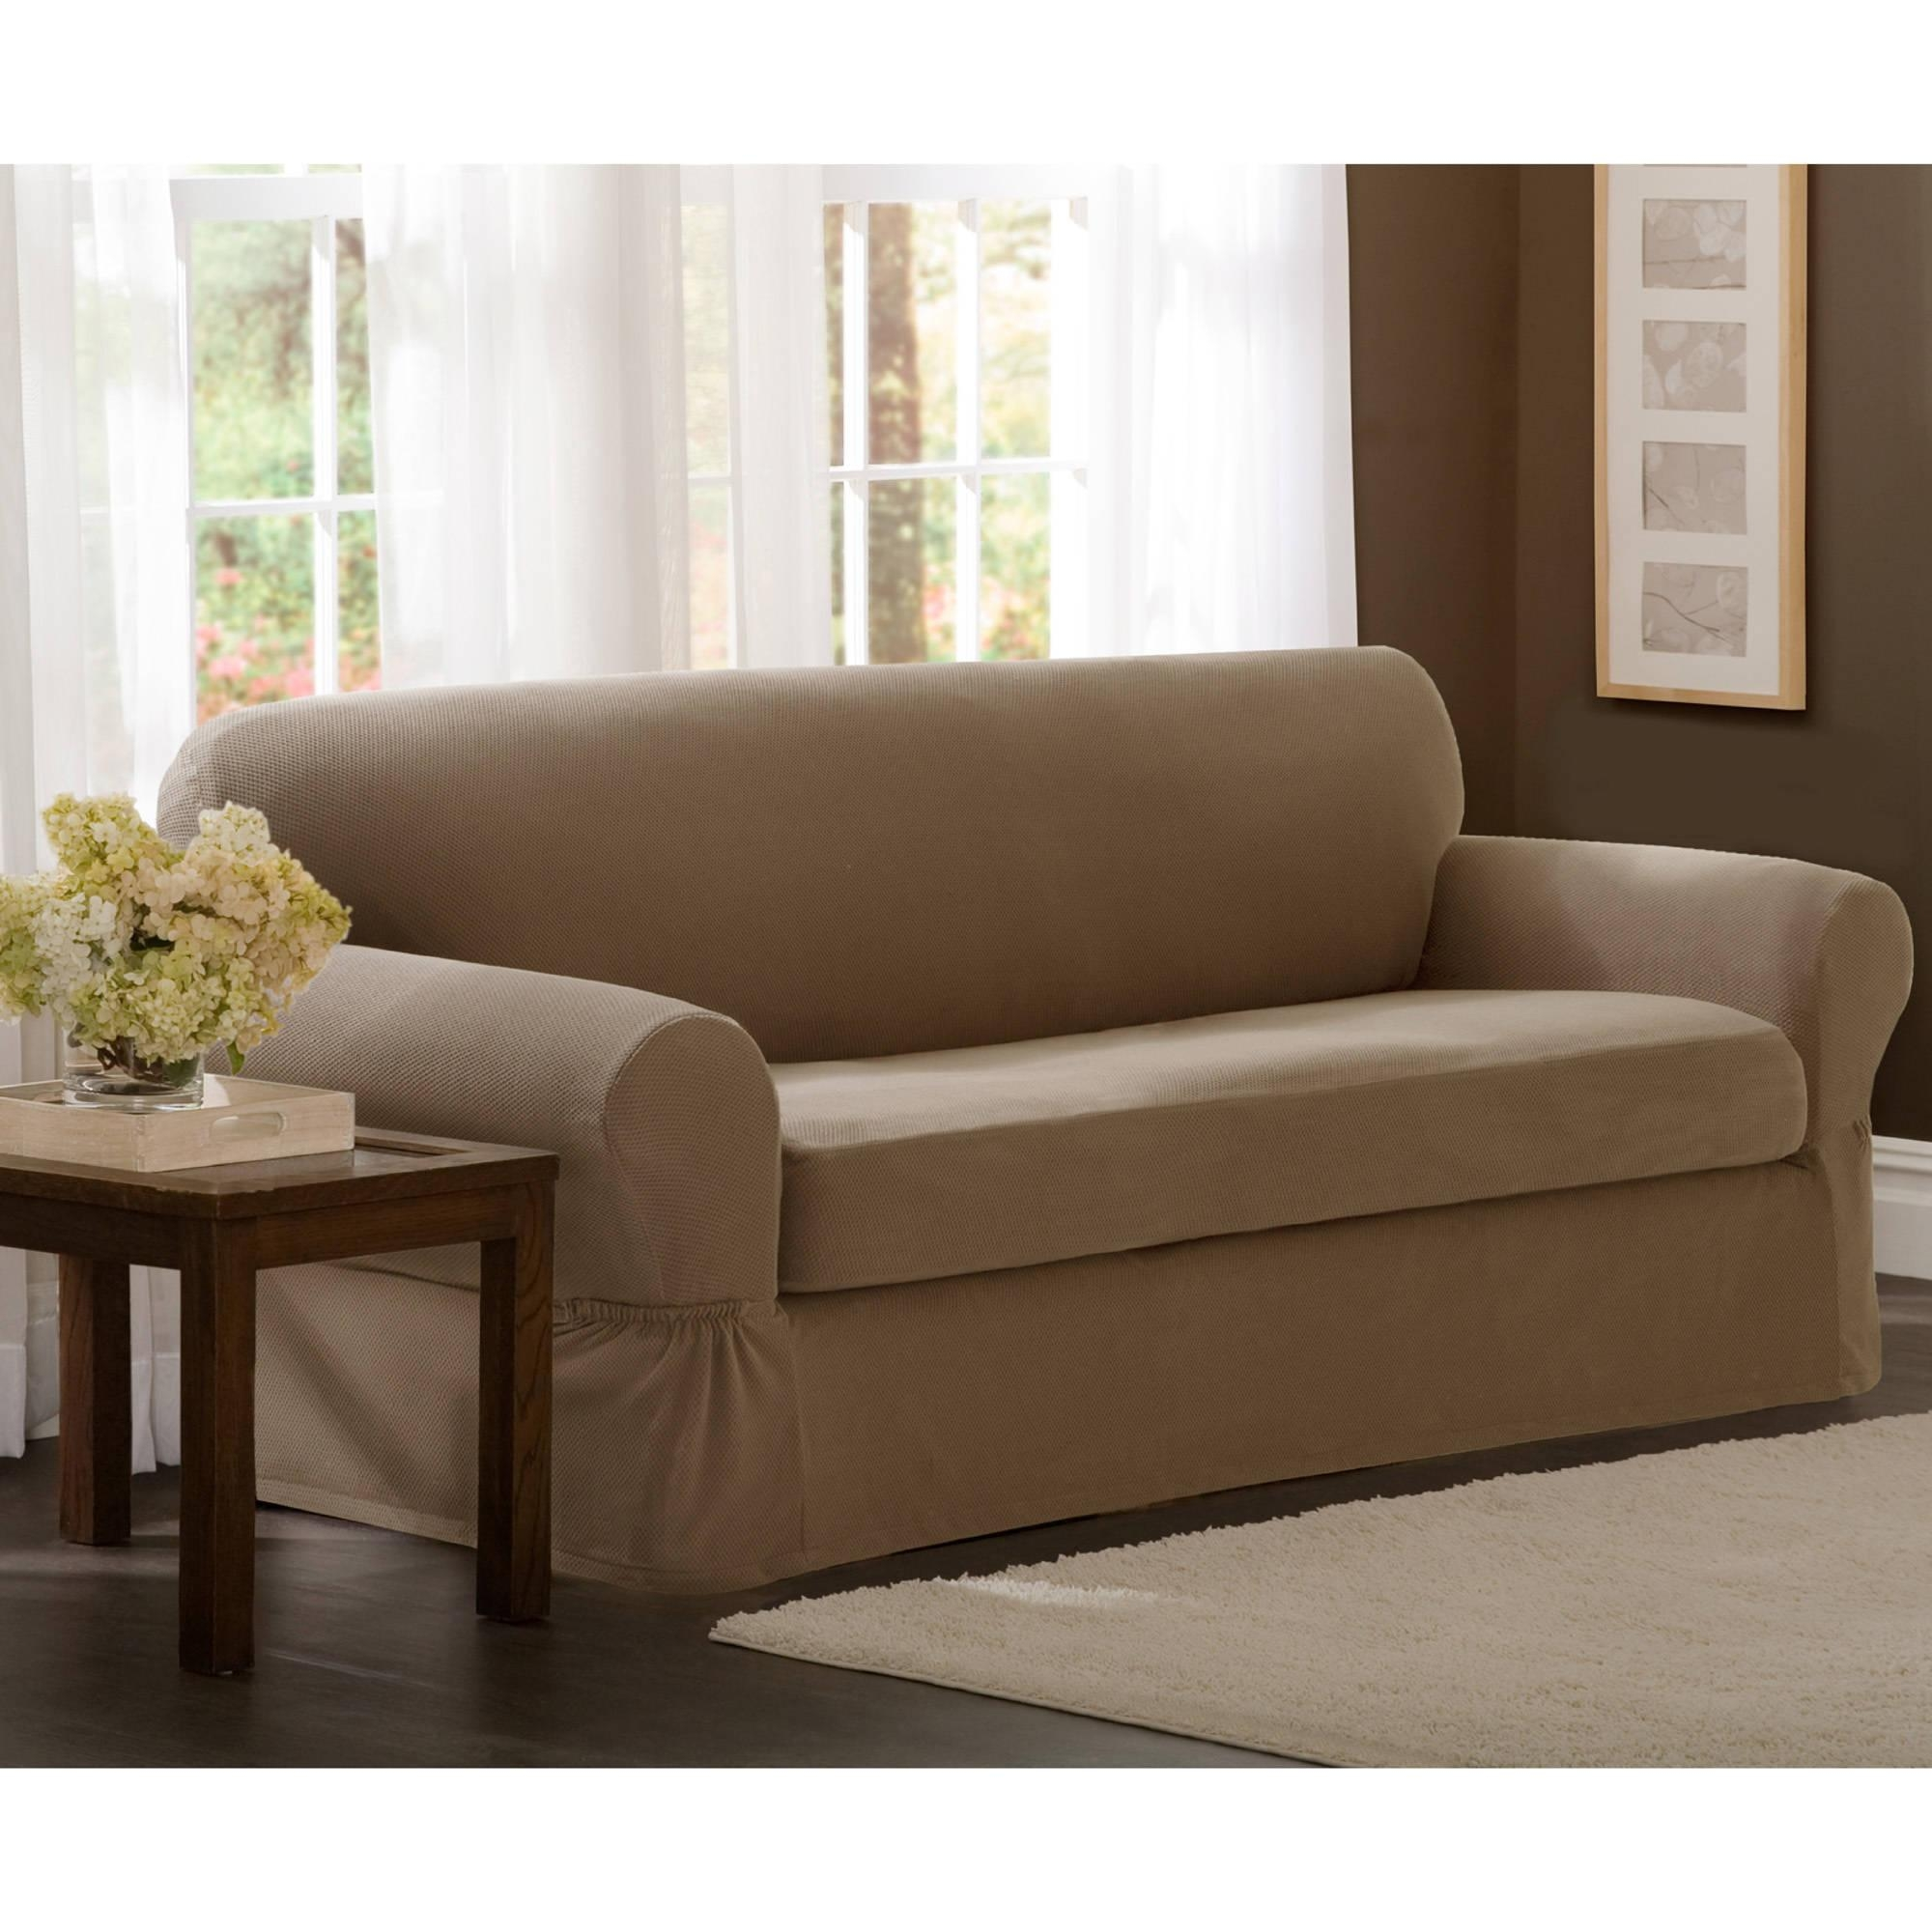 Maytex Stretch 2 Piece Sofa Slipcover – Walmart Intended For Walmart Slipcovers For Sofas (Image 15 of 20)